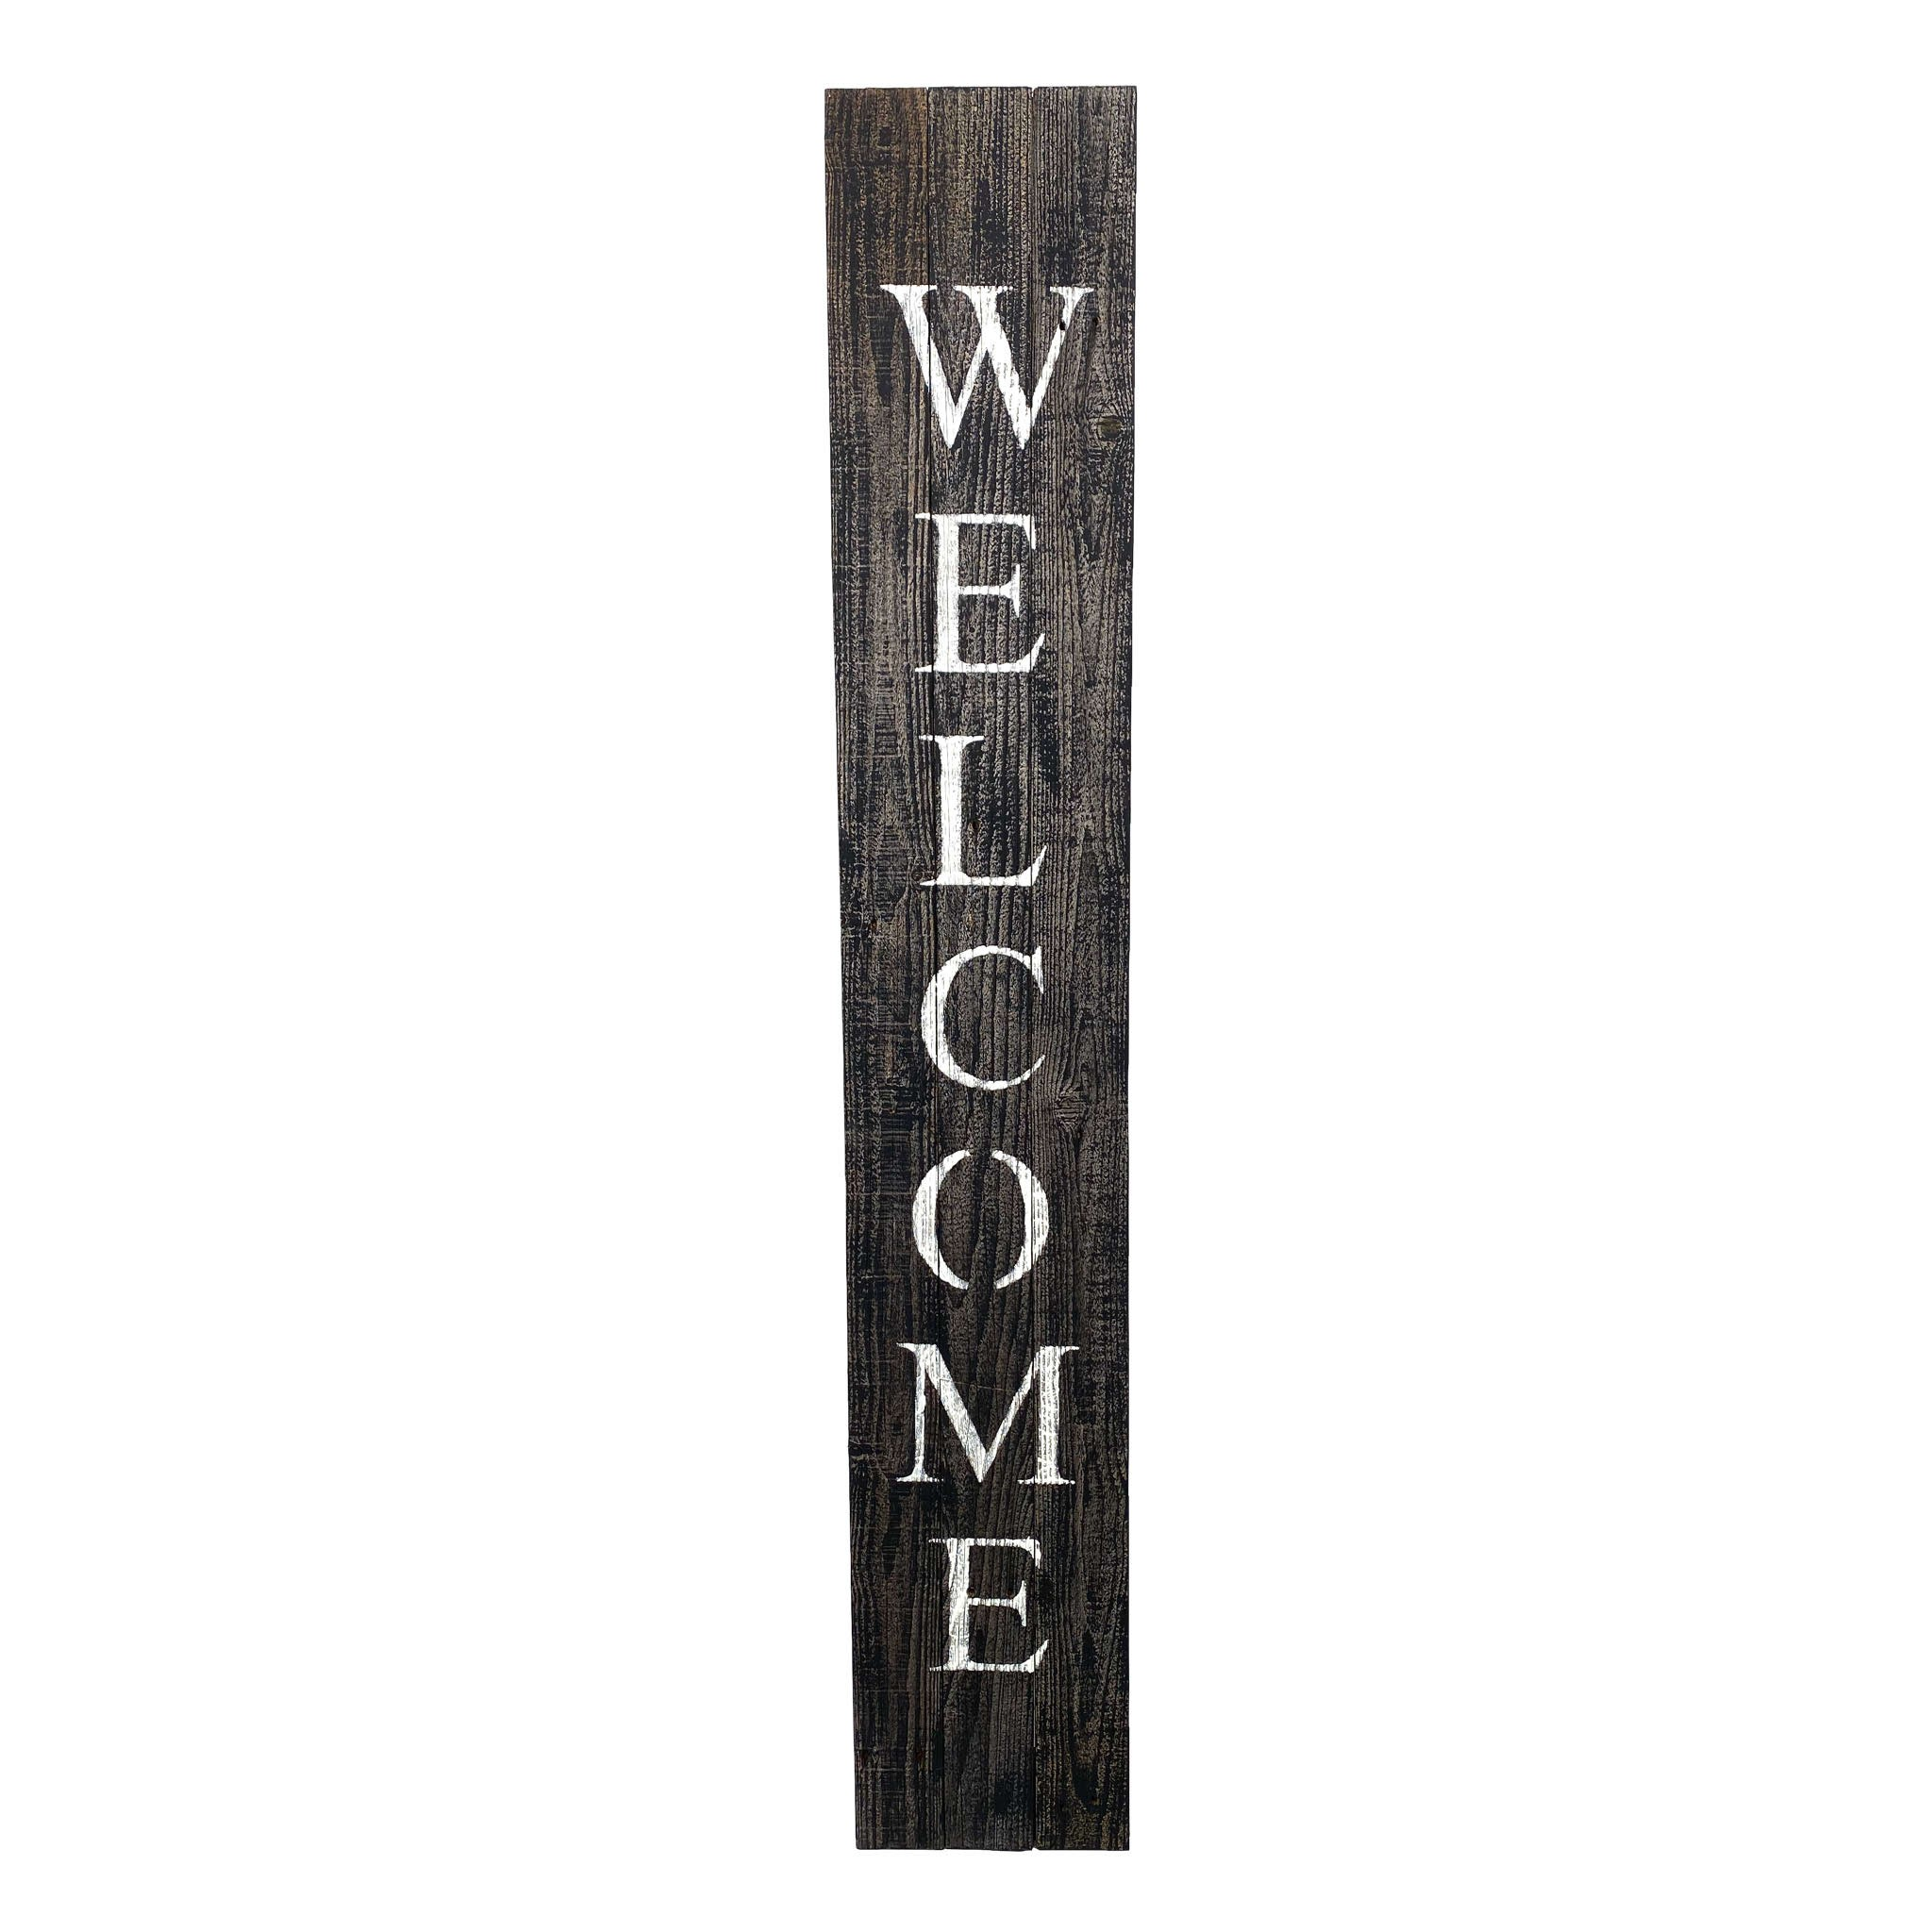 Rustic Black and White Front Porch Welcome Sign